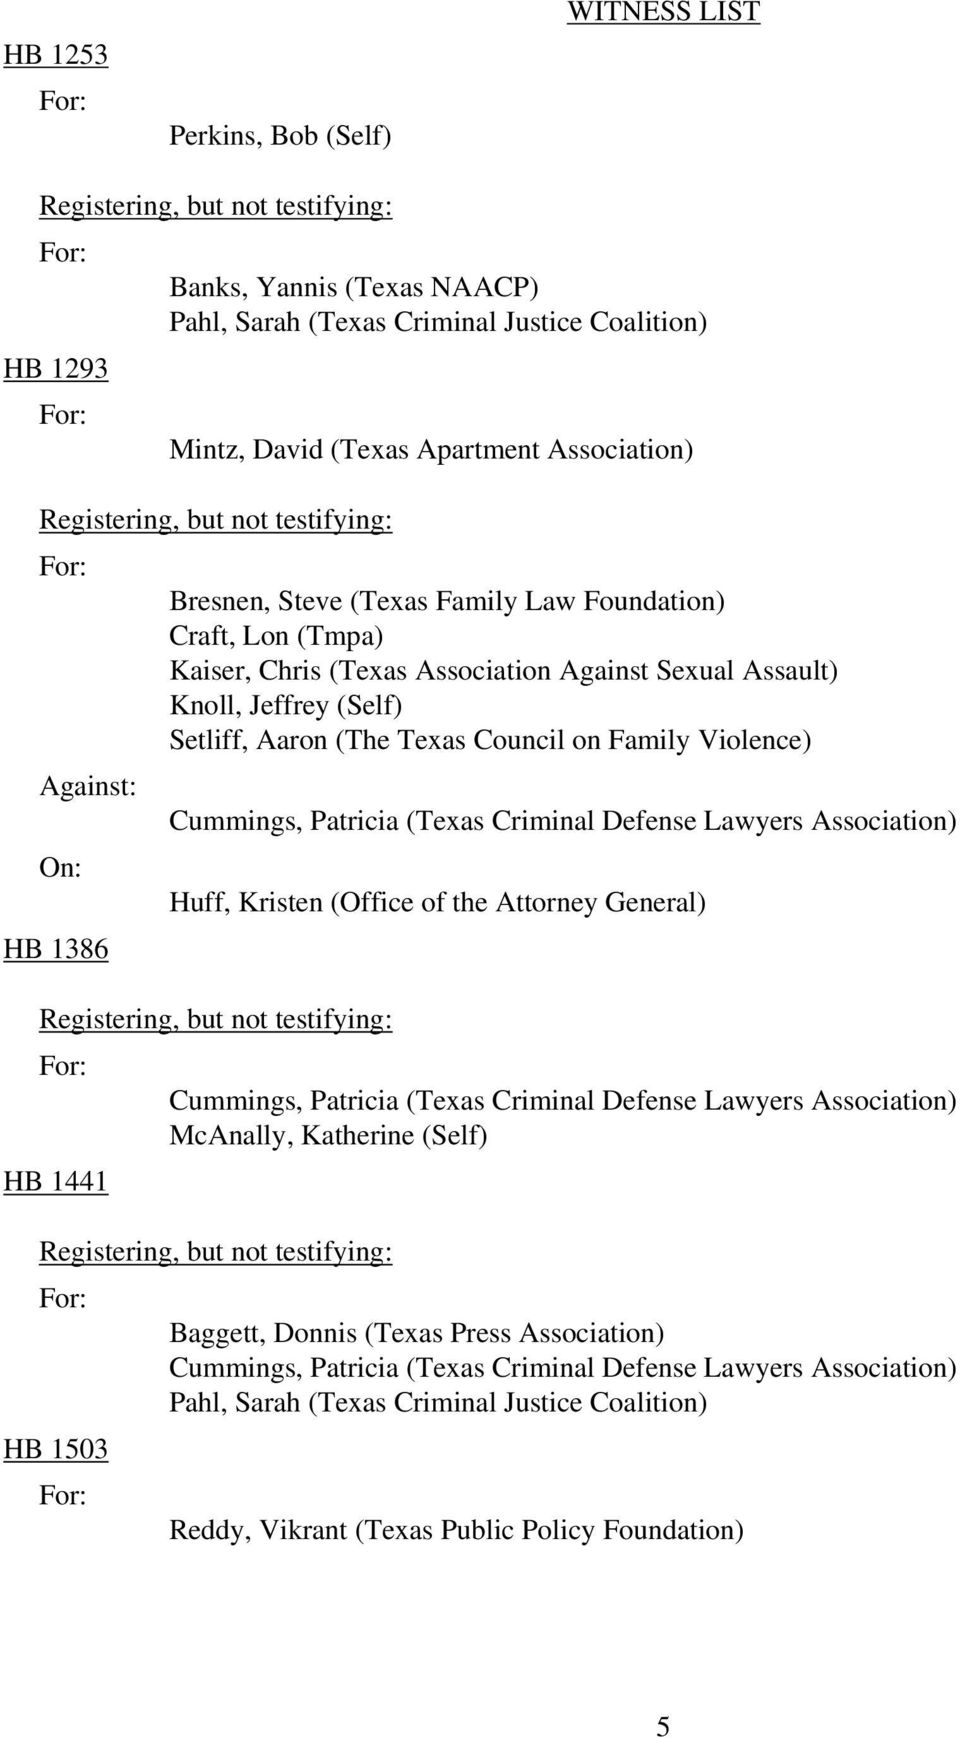 Family Violence) Huff, Kristen (Office of the Attorney General) HB 1441 McAnally, Katherine